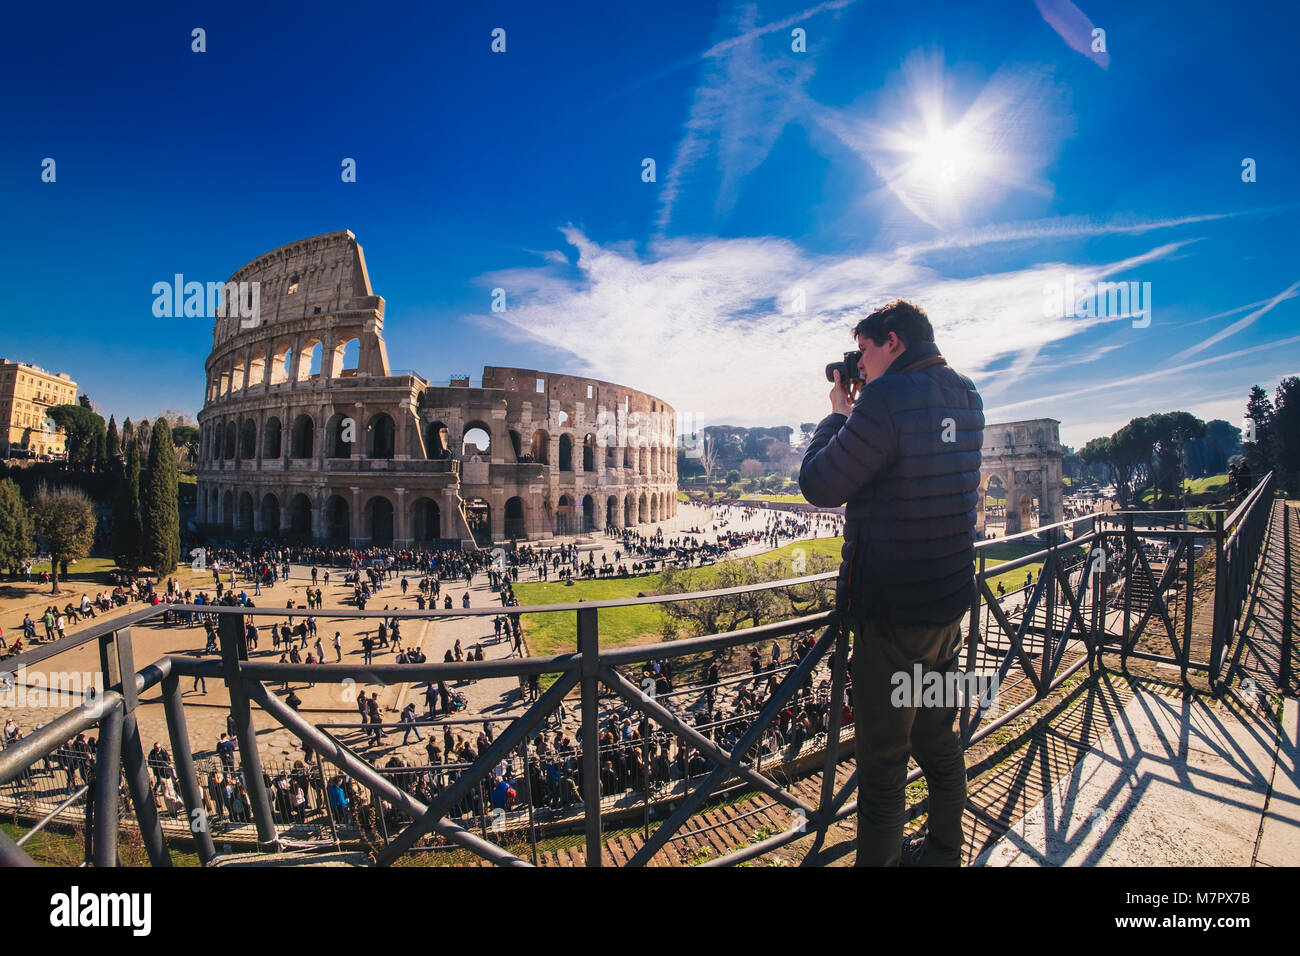 Tourist taking pictures at the Colosseum in Rome, Italy - Stock Image